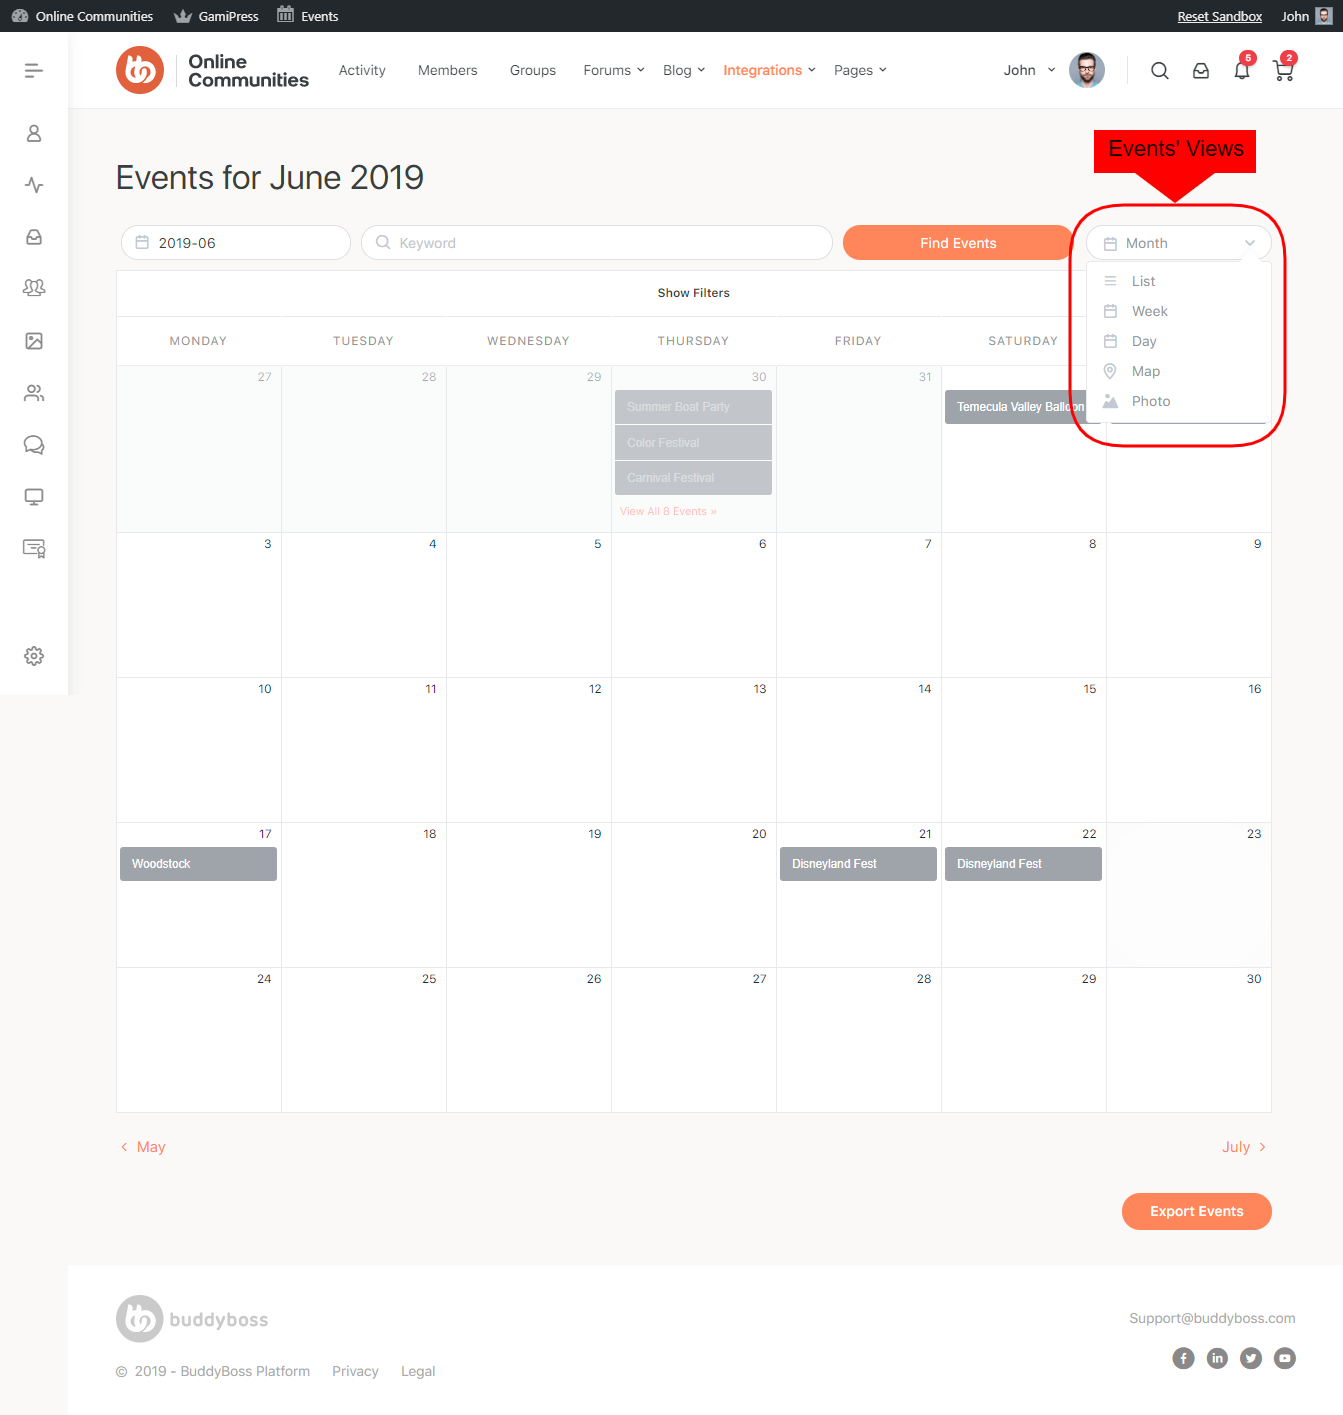 Events Calendar - Available Views